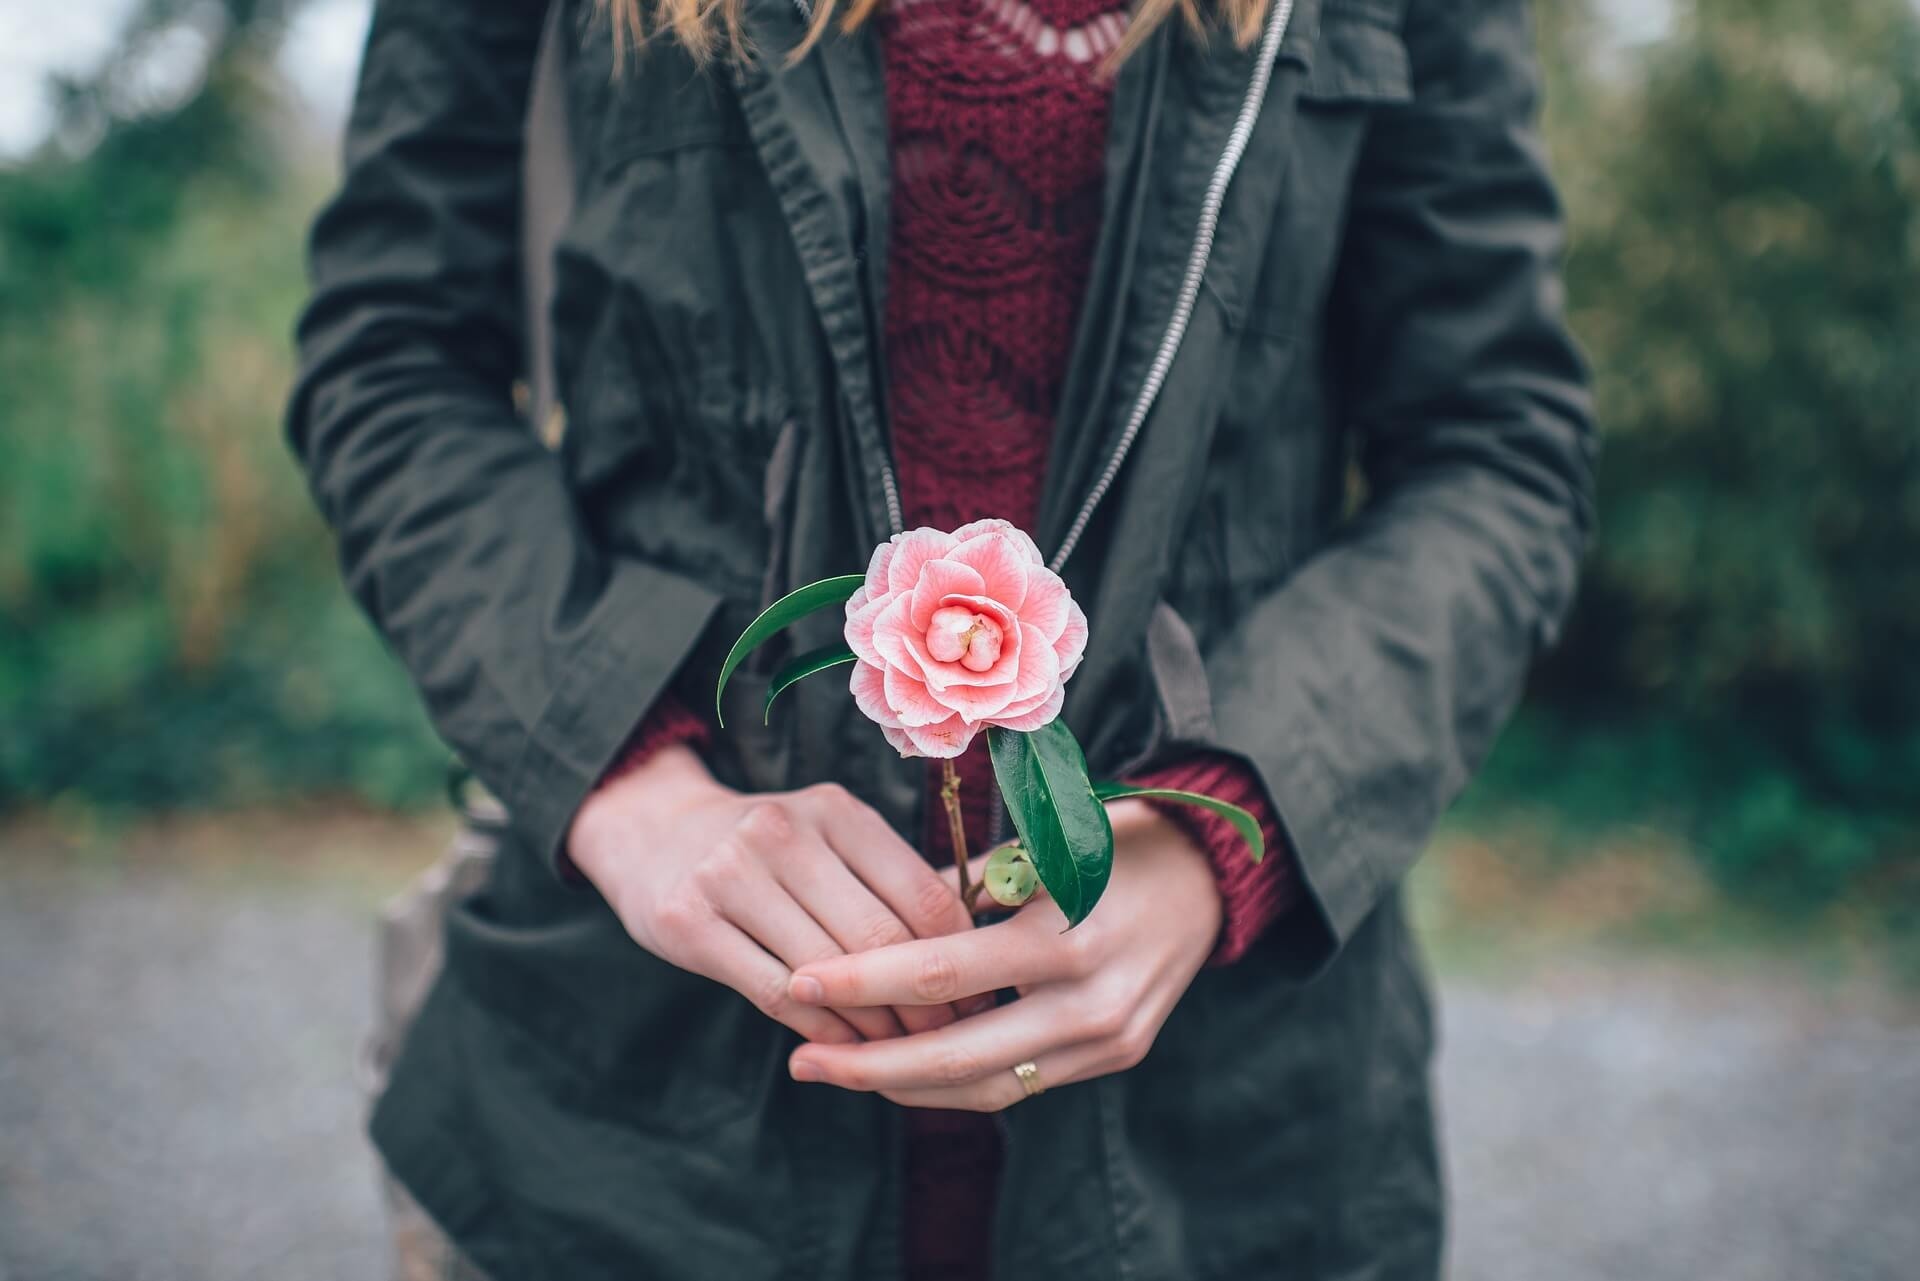 Woman holding flower: What is mindfulness for women?